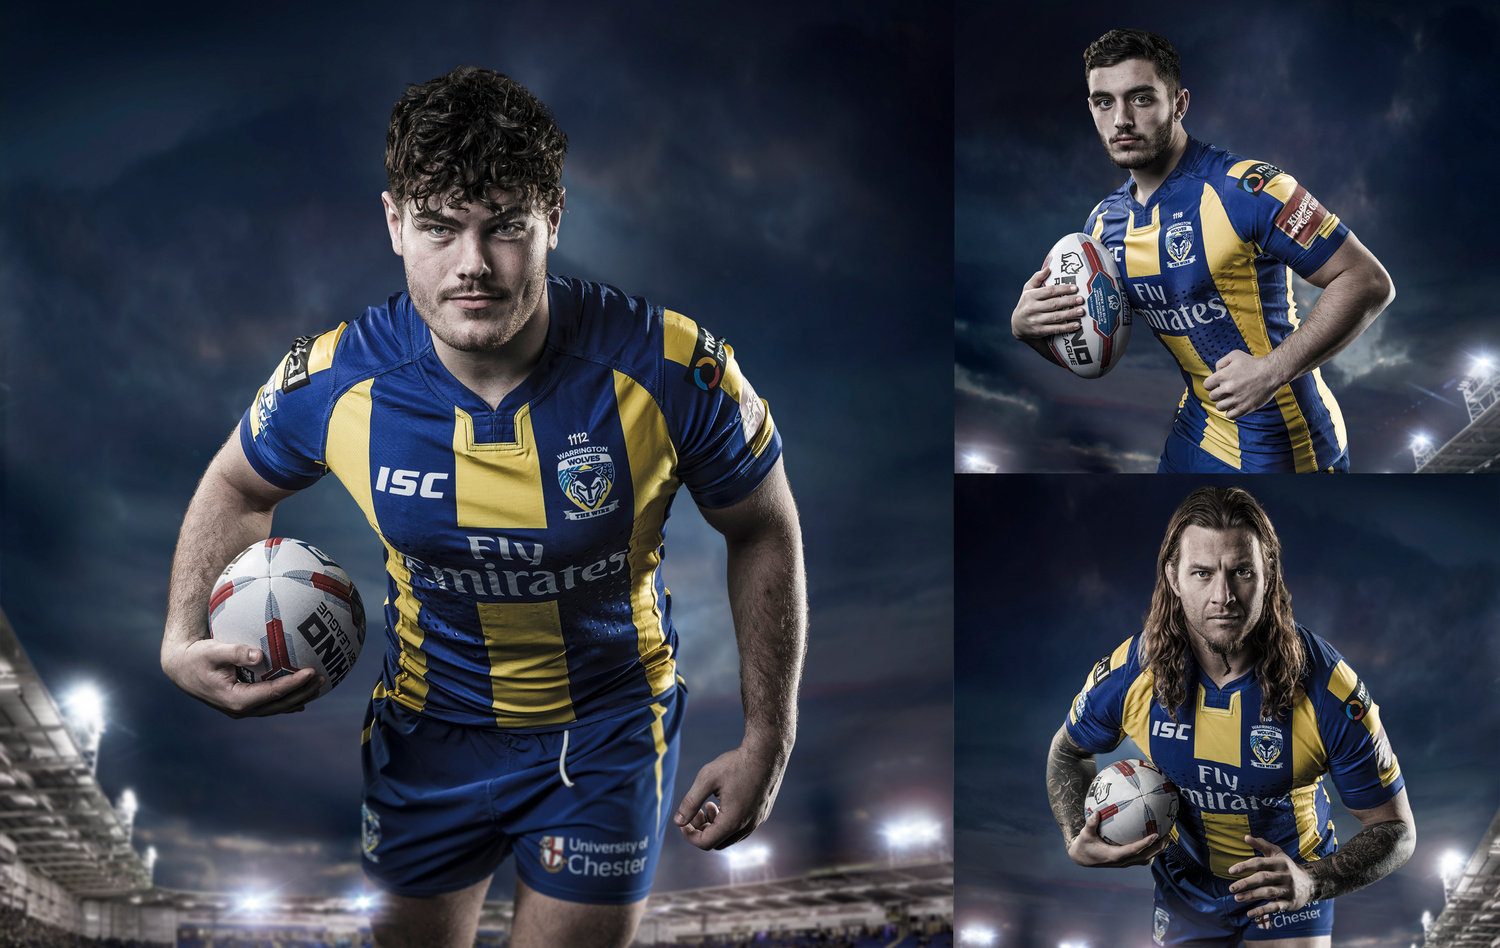 Rugby portraits by Chris Doyle